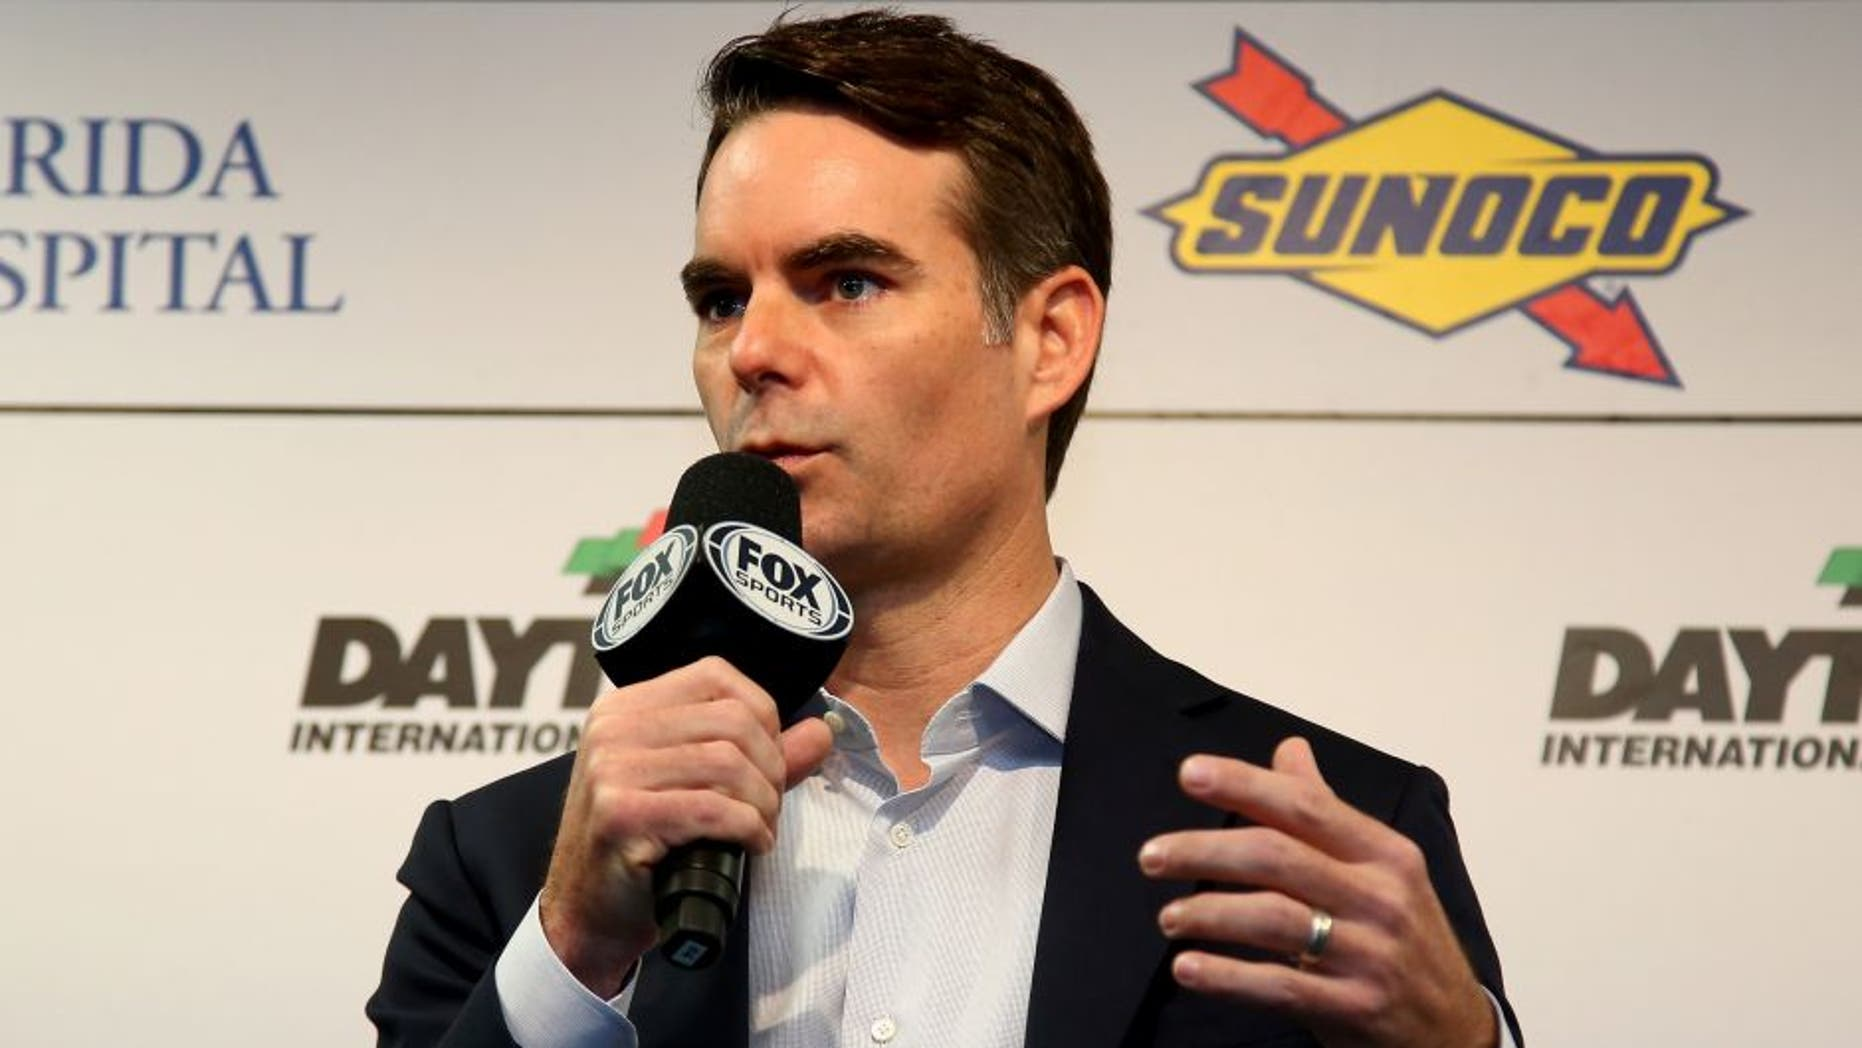 DAYTONA BEACH, FL - FEBRUARY 18: Jeff Gordon speaks to the media during a press conference during practice for the NASCAR Sprint Cup Series Daytona 500 at Daytona International Speedway on February 18, 2016 in Daytona Beach, Florida. (Photo by Sarah Crabill/NASCAR via Getty Images)